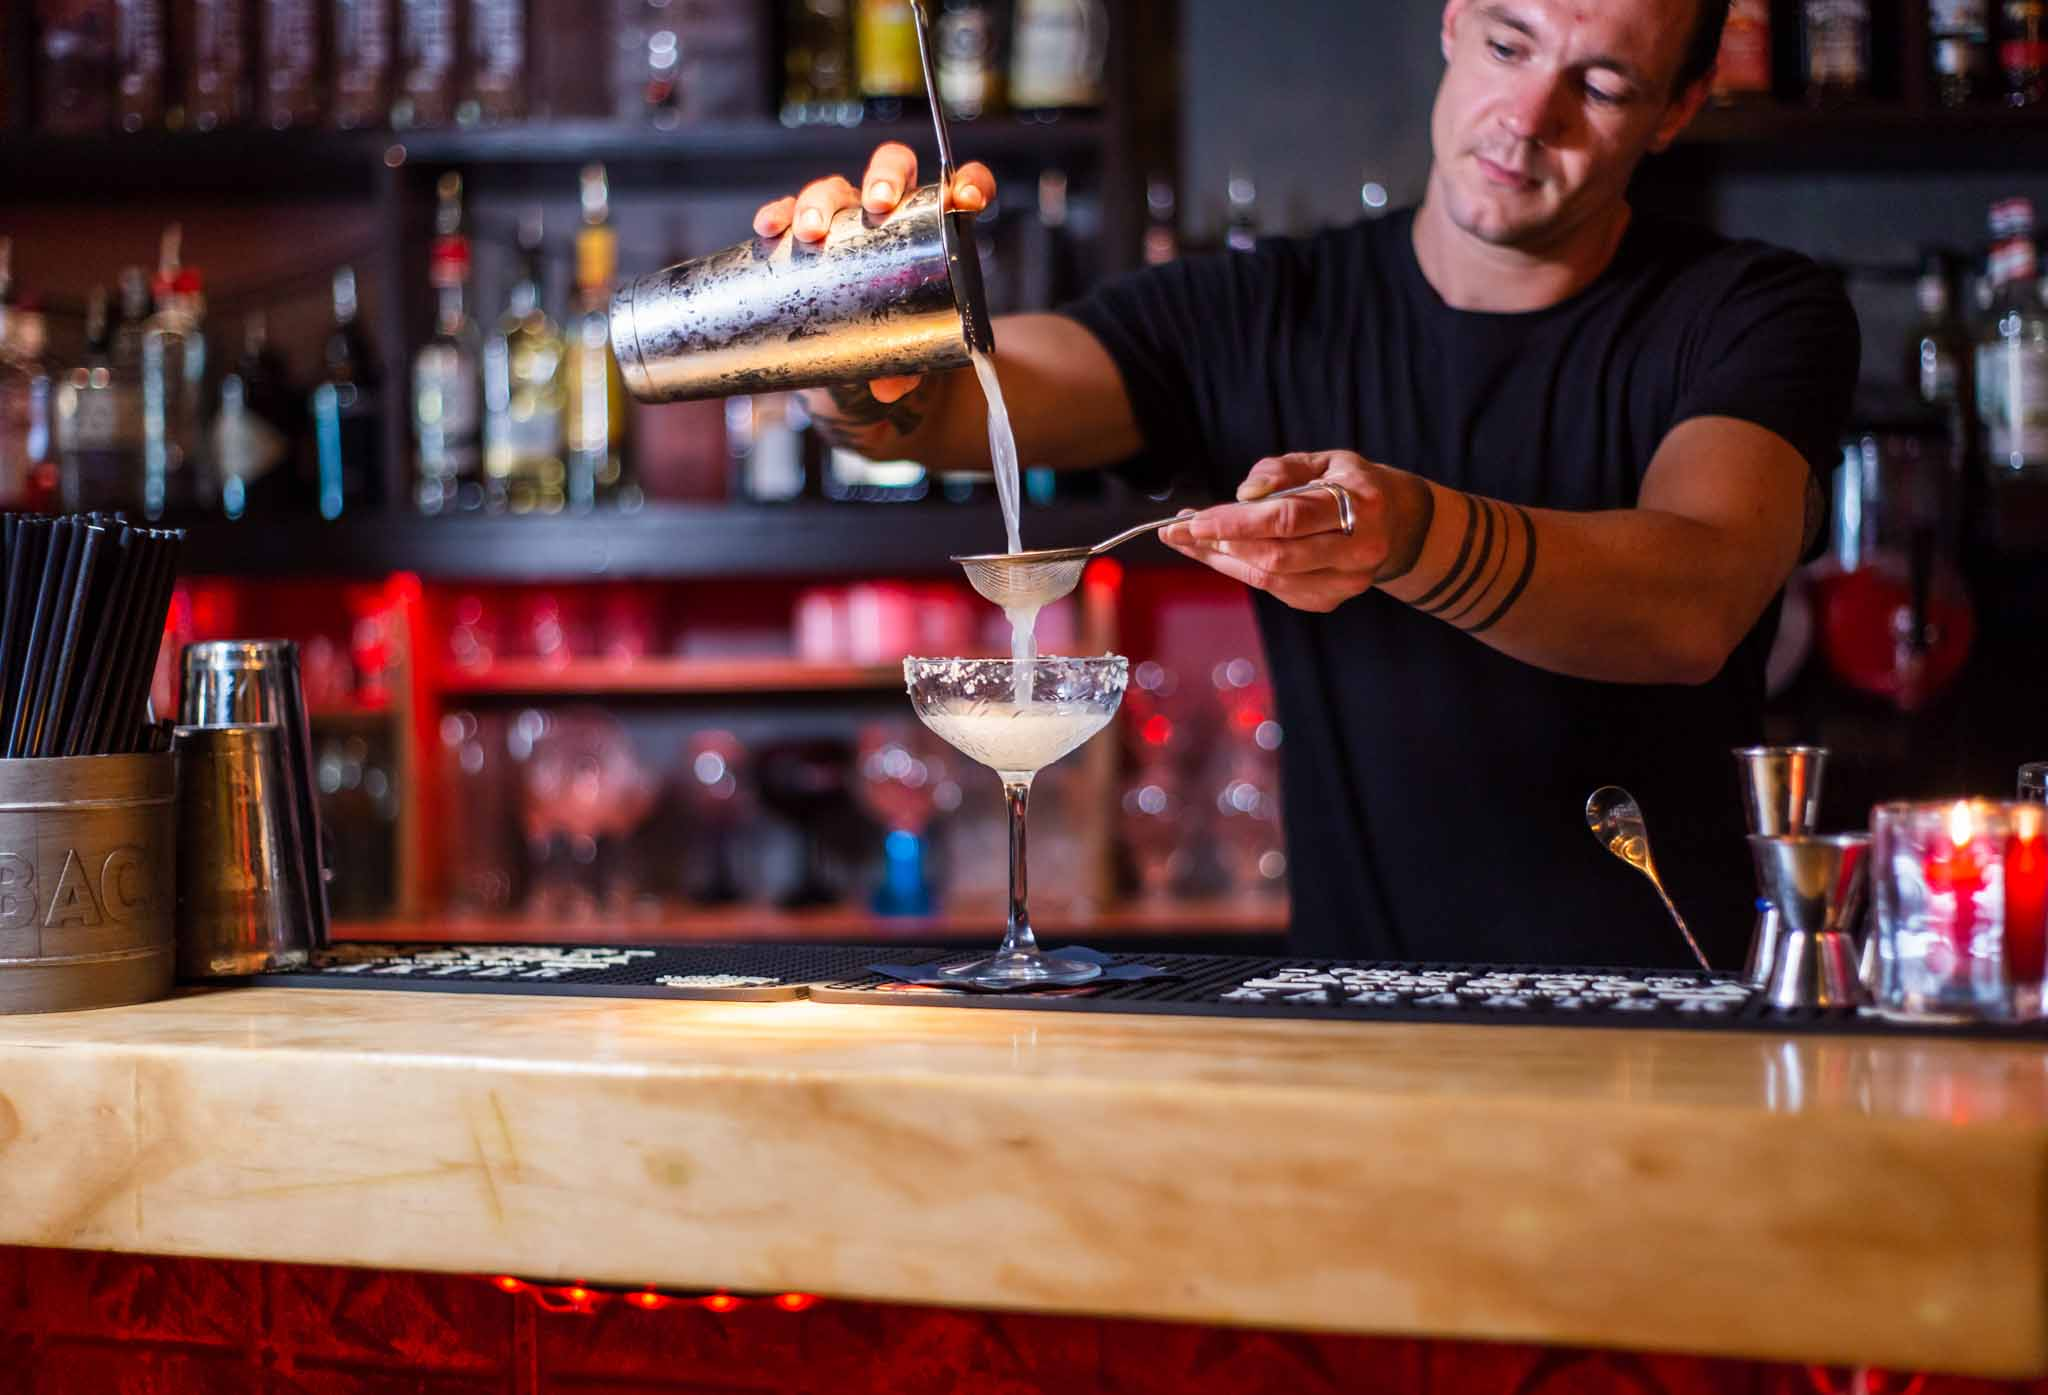 Bartender pouring cocktail into a glass in a bar